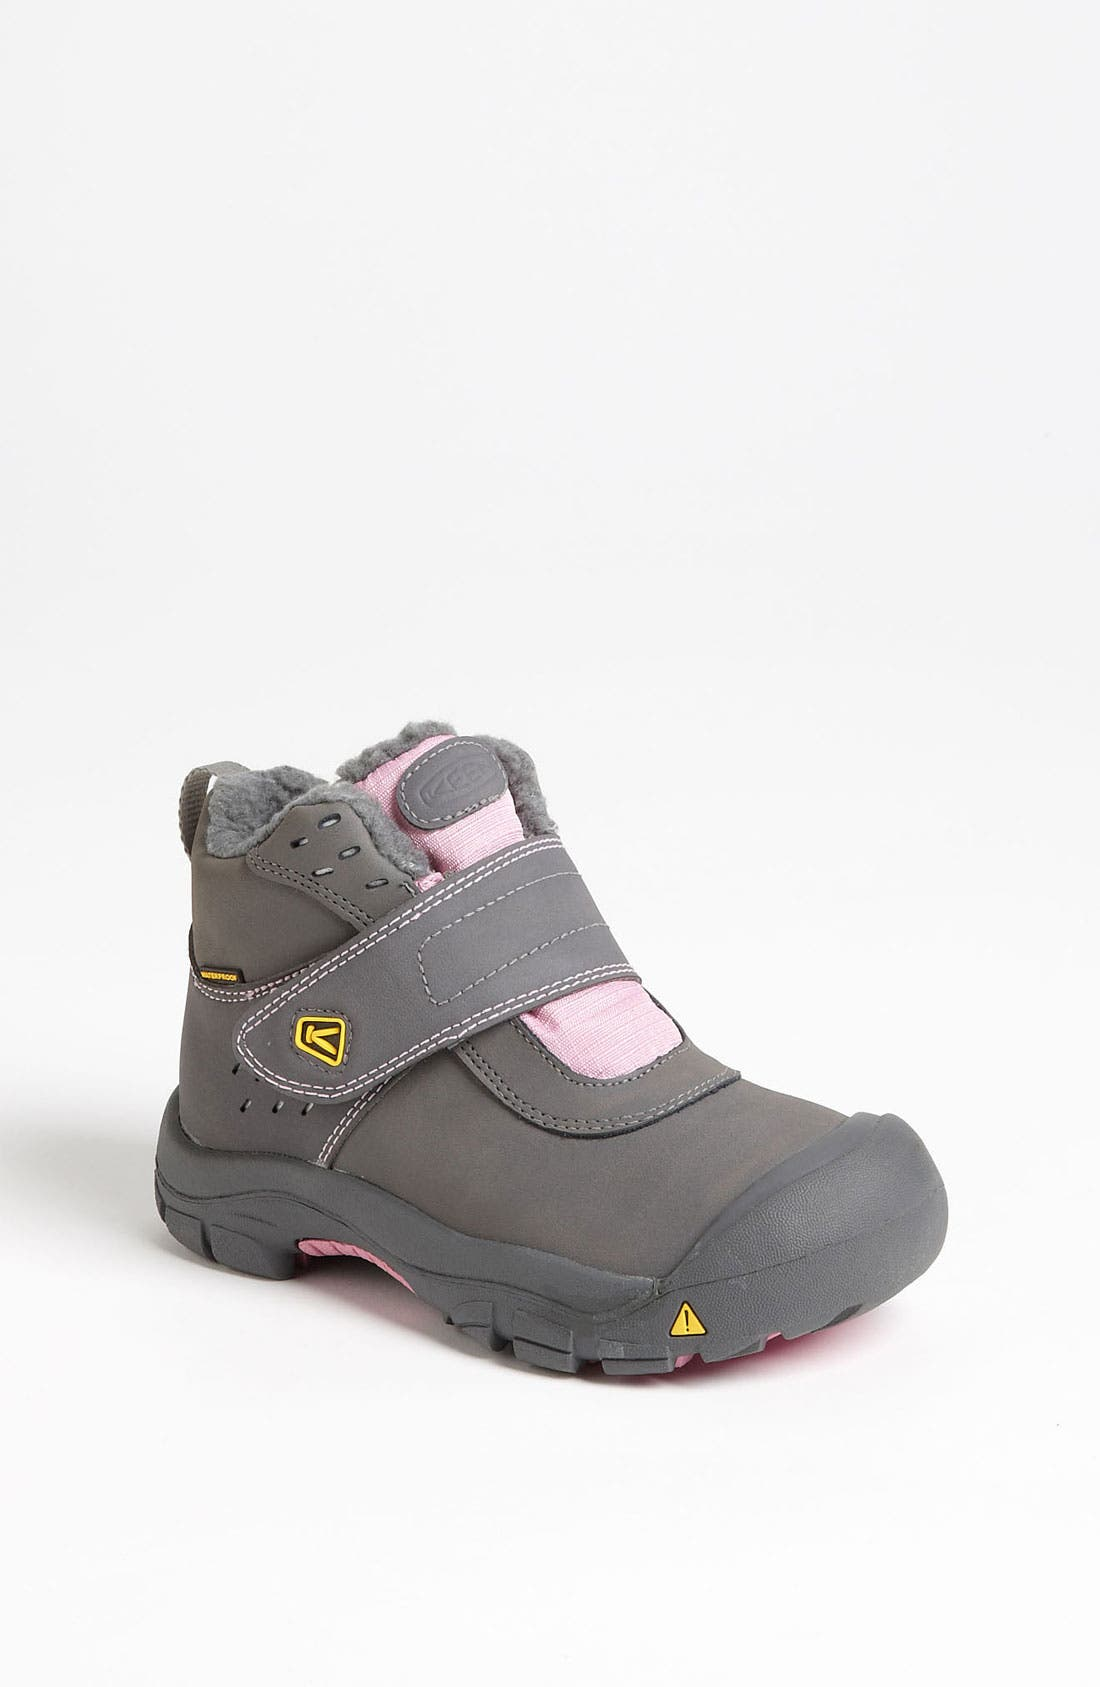 Main Image - Keen 'Kalamazoo Mid' Waterproof Boot (Toddler, Little Kid & Big Kid)